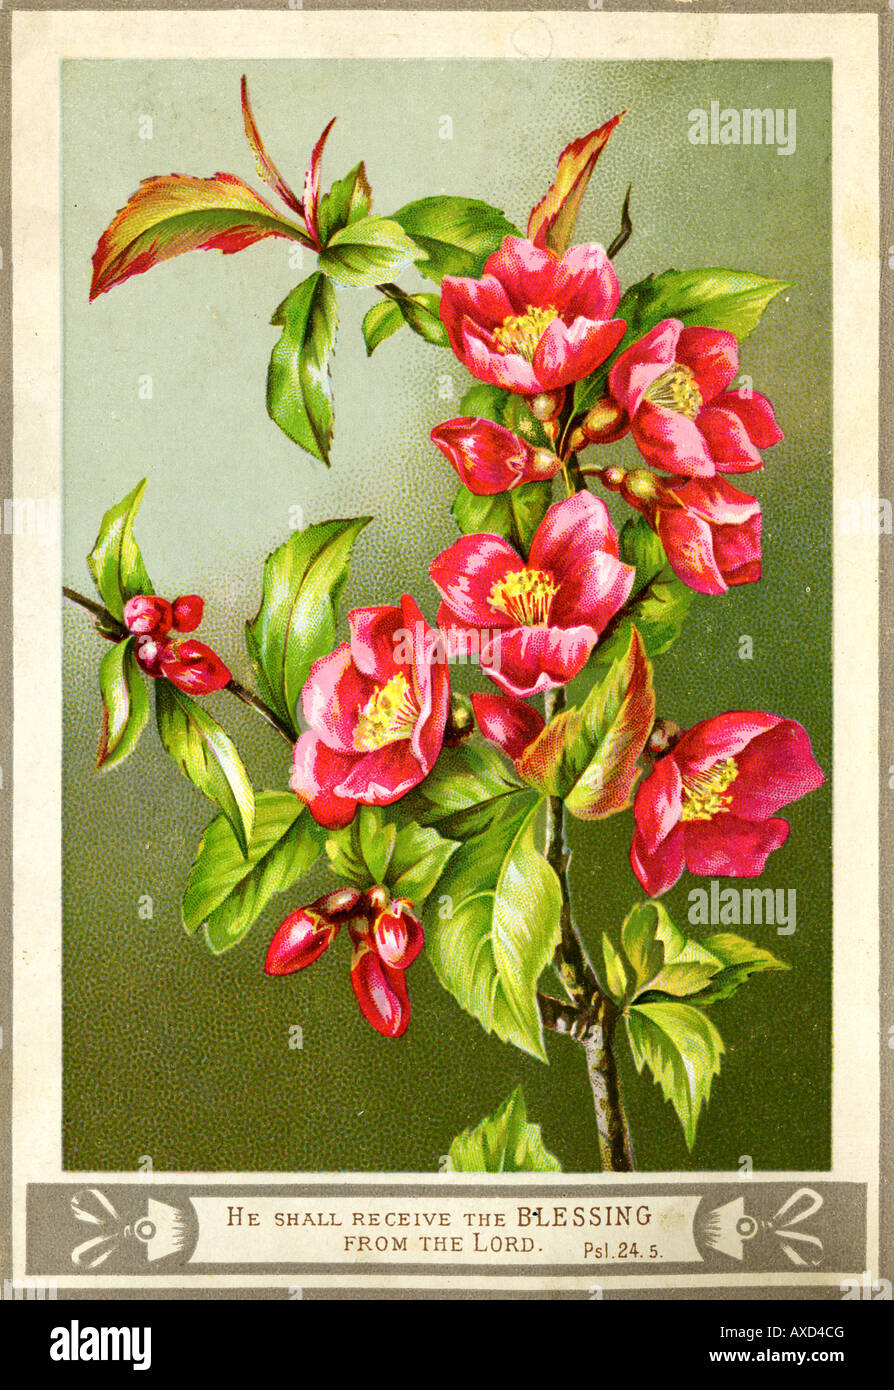 1880s Victorian Greetings Card - Stock Image